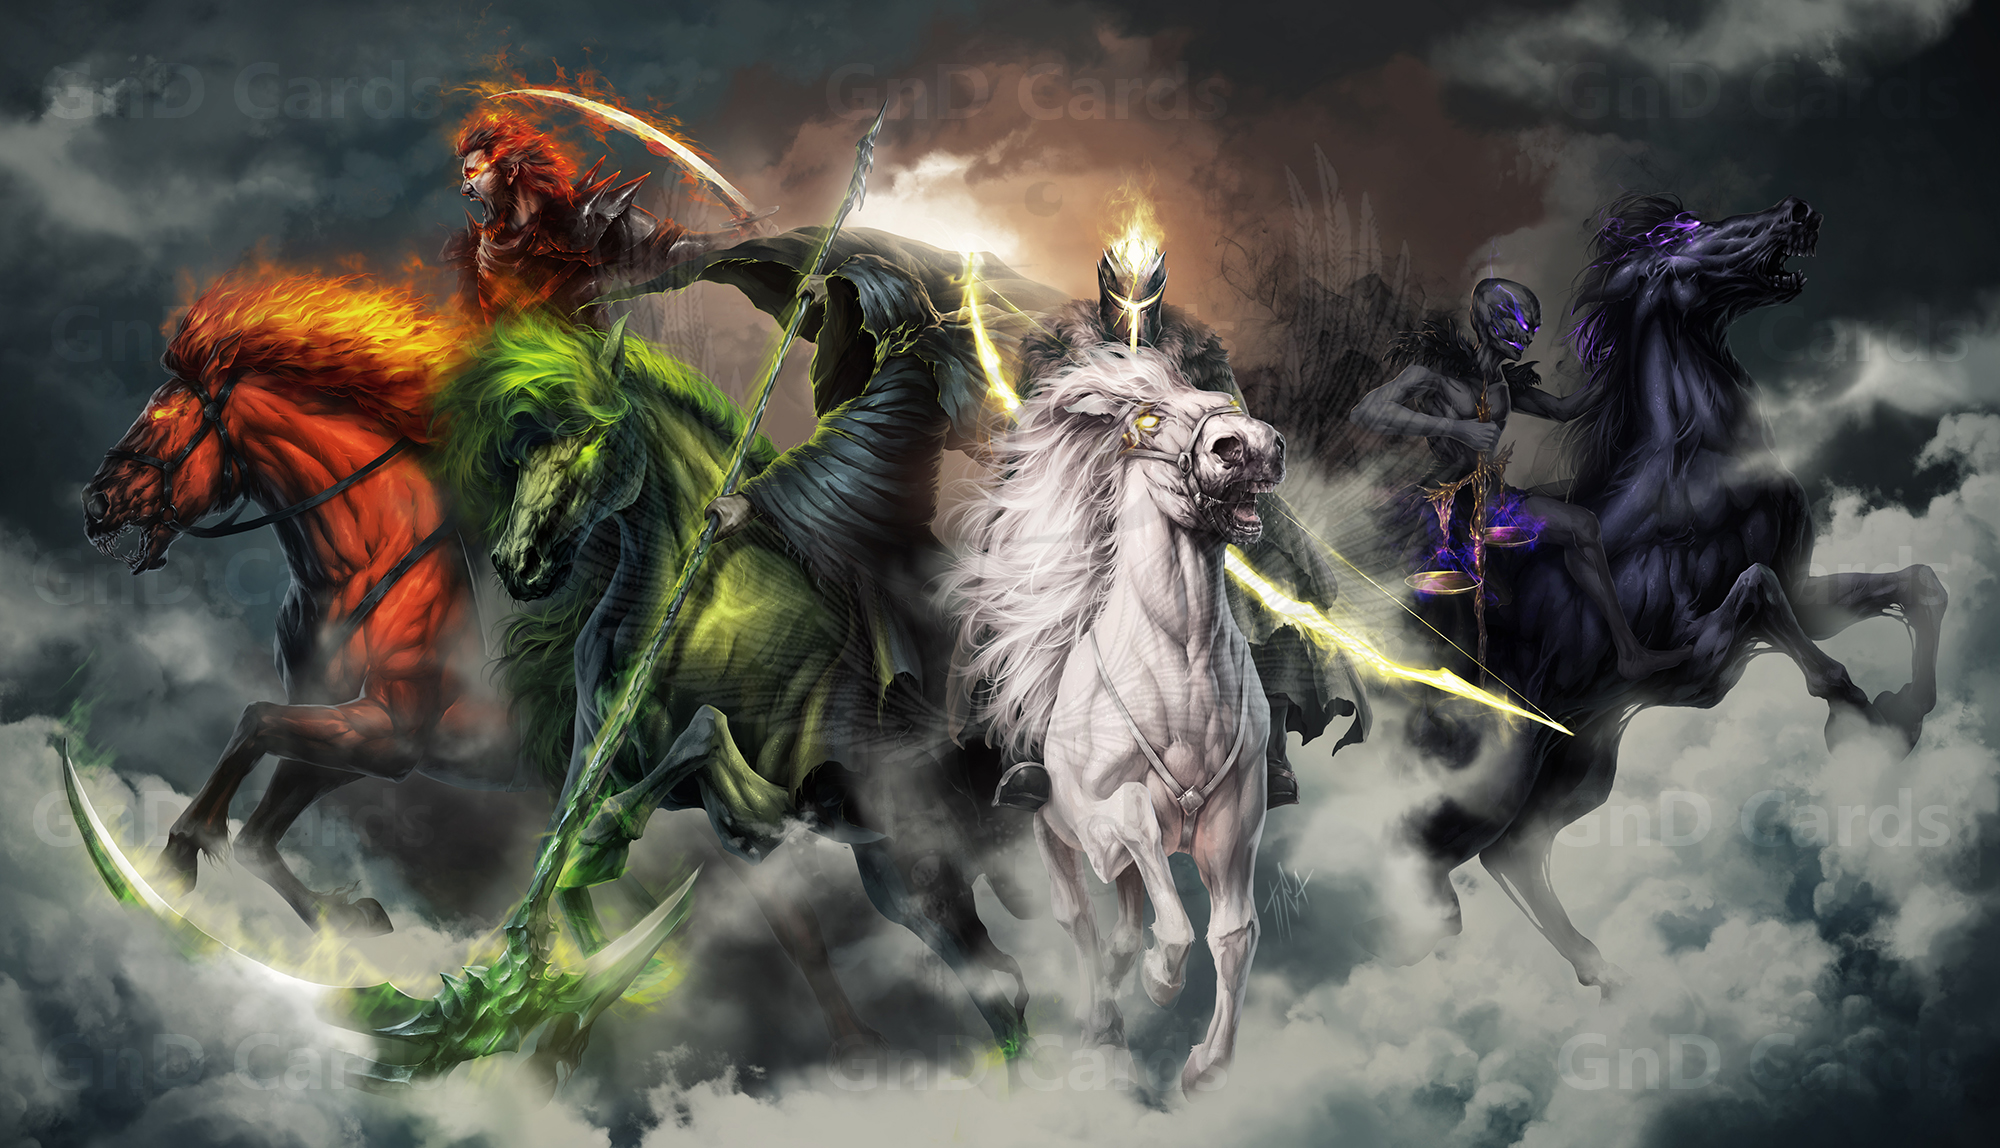 Four Horsemen Of The Apocalypse Fantasy Wallpapers 2000x1148